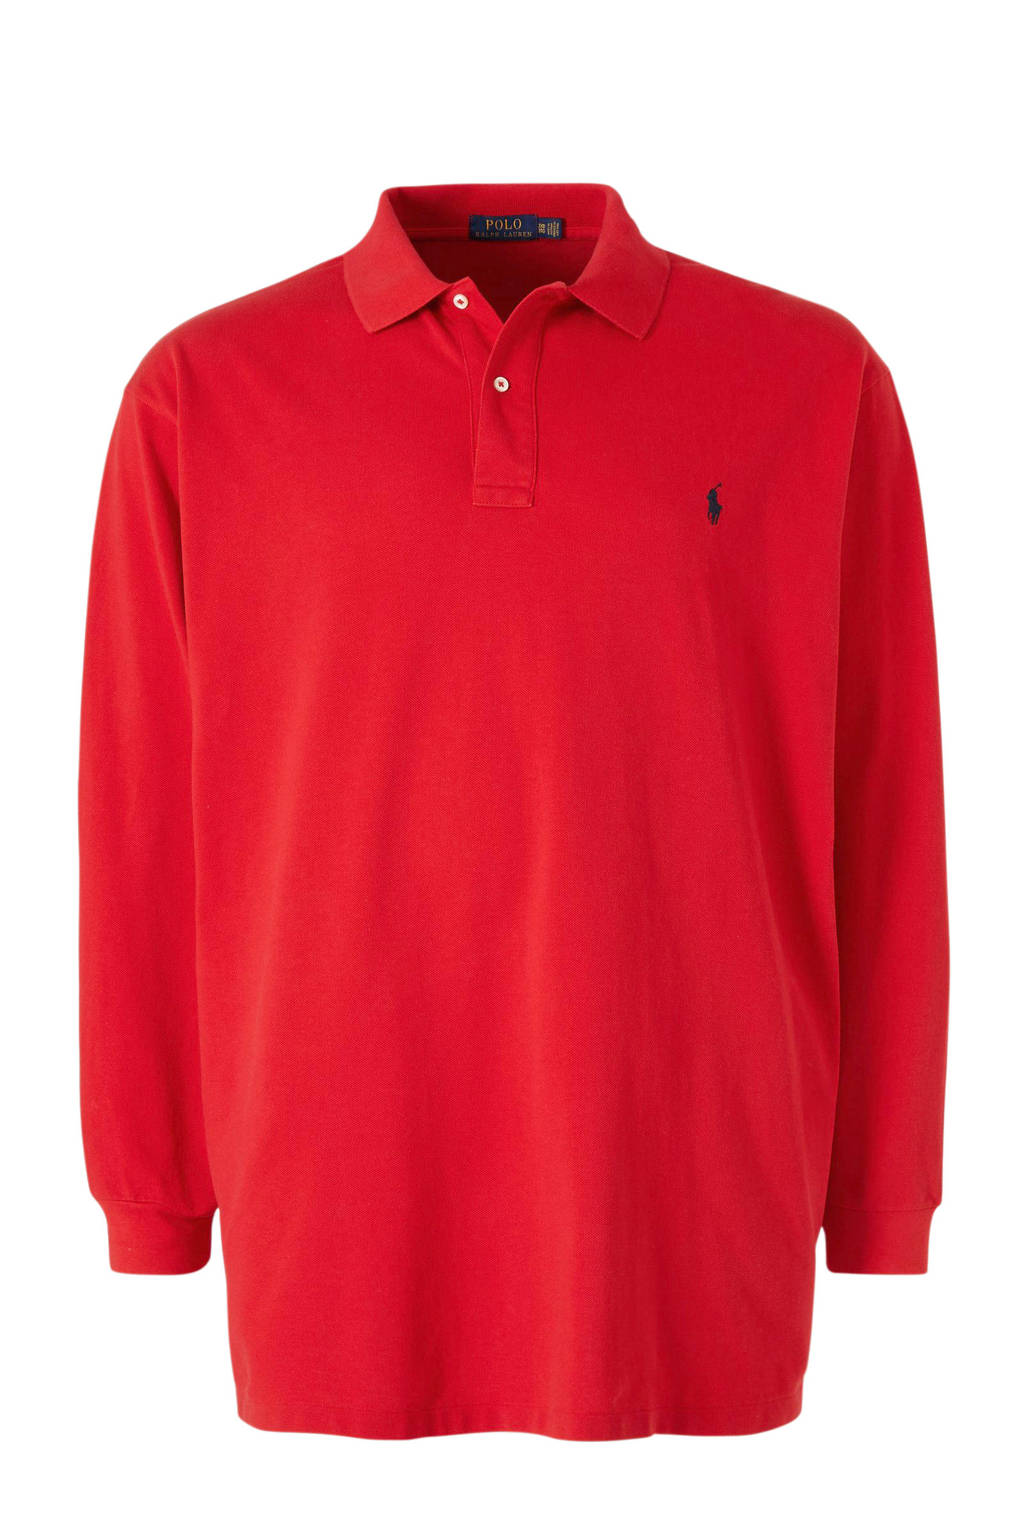 POLO Ralph Lauren Big & Tall +size regular fit polo met logo rood, Rood